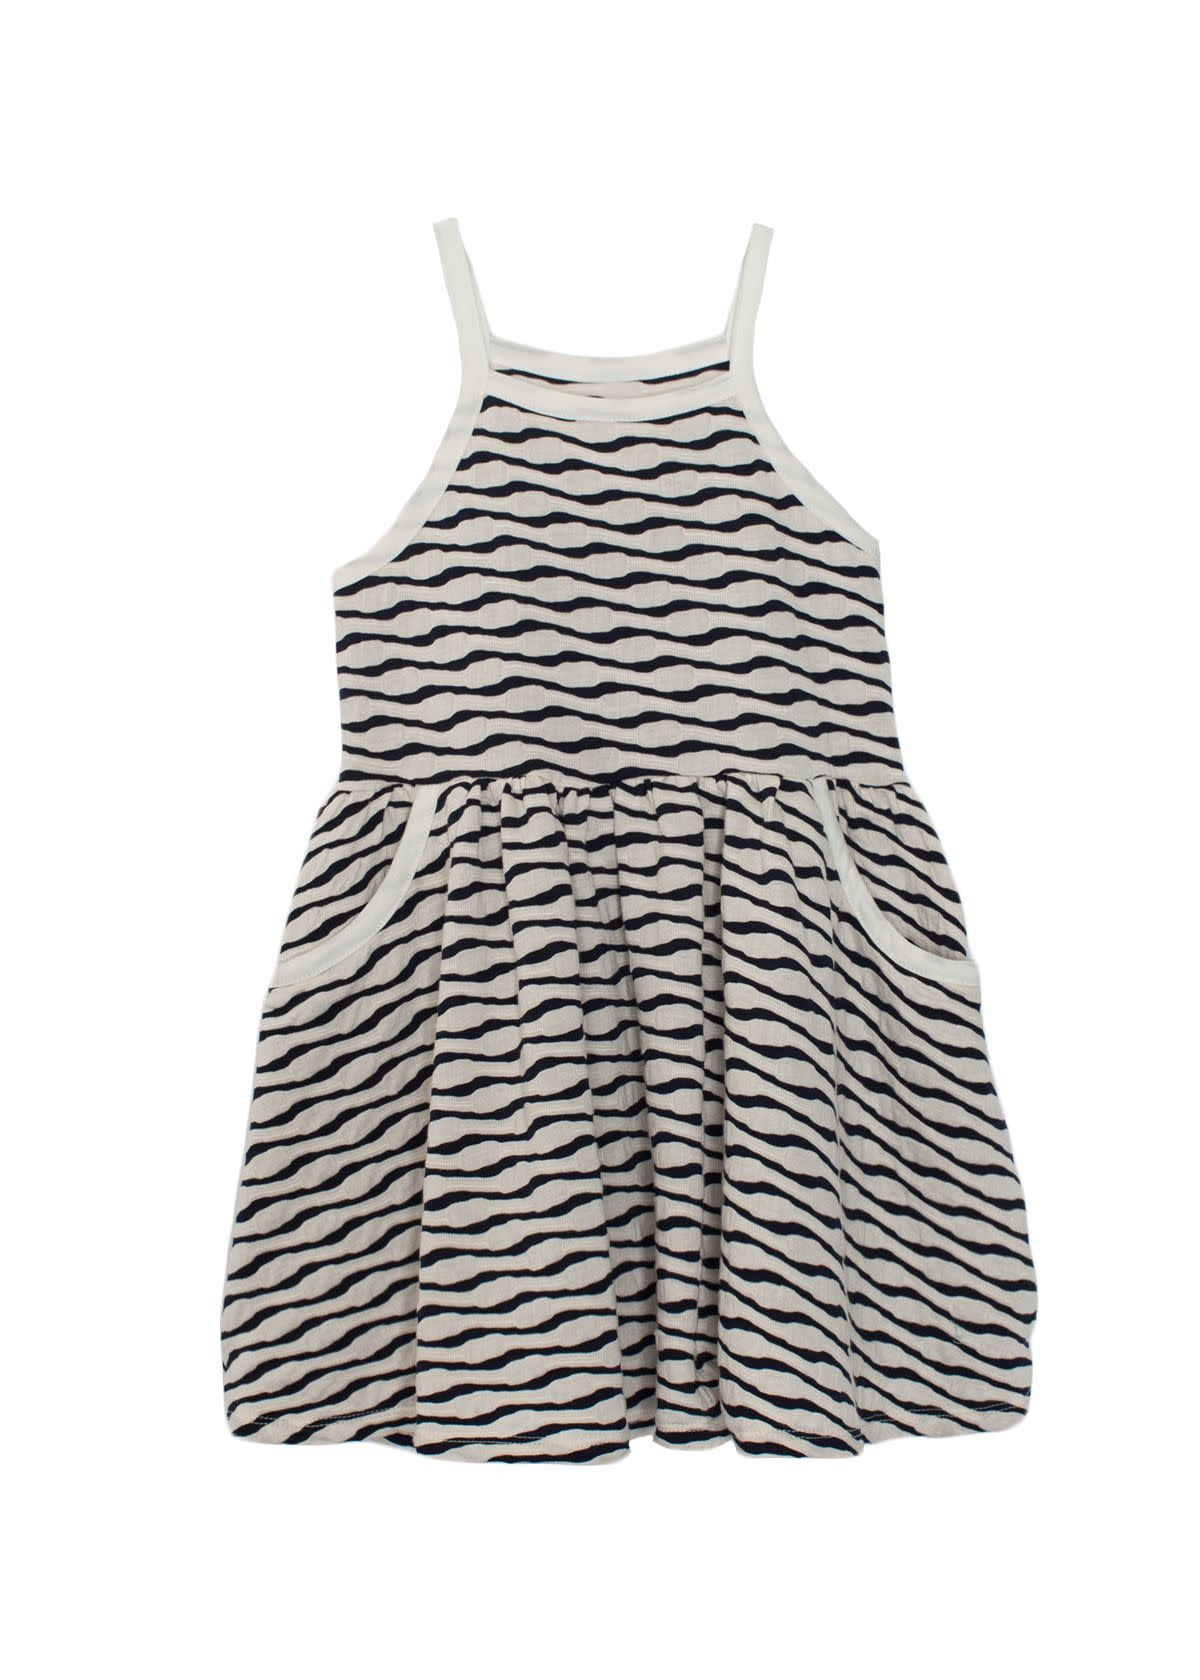 Mabel and Honey Textured Knit Dress